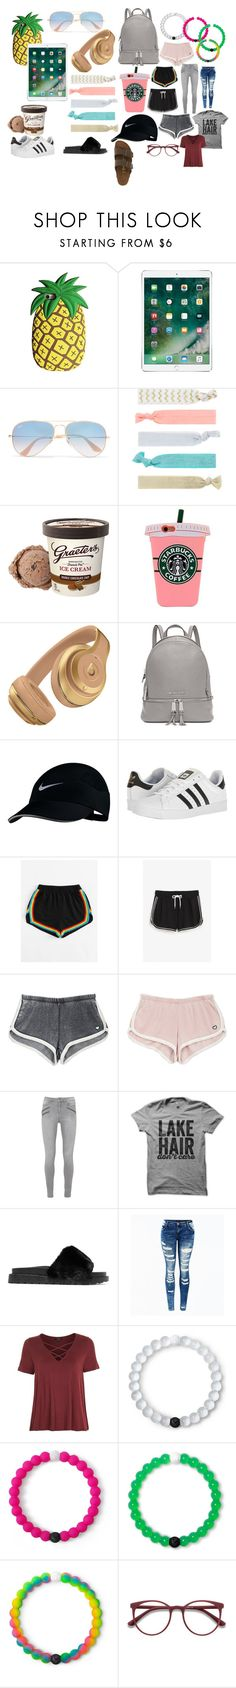 """""""thing laying around in my room"""" by bradyyy on Polyvore featuring Ray-Ban, Accessorize, Michael Kors, NIKE, adidas, Monki, Sam Edelman, Topshop, Lokai and EyeBuyDirect.com"""